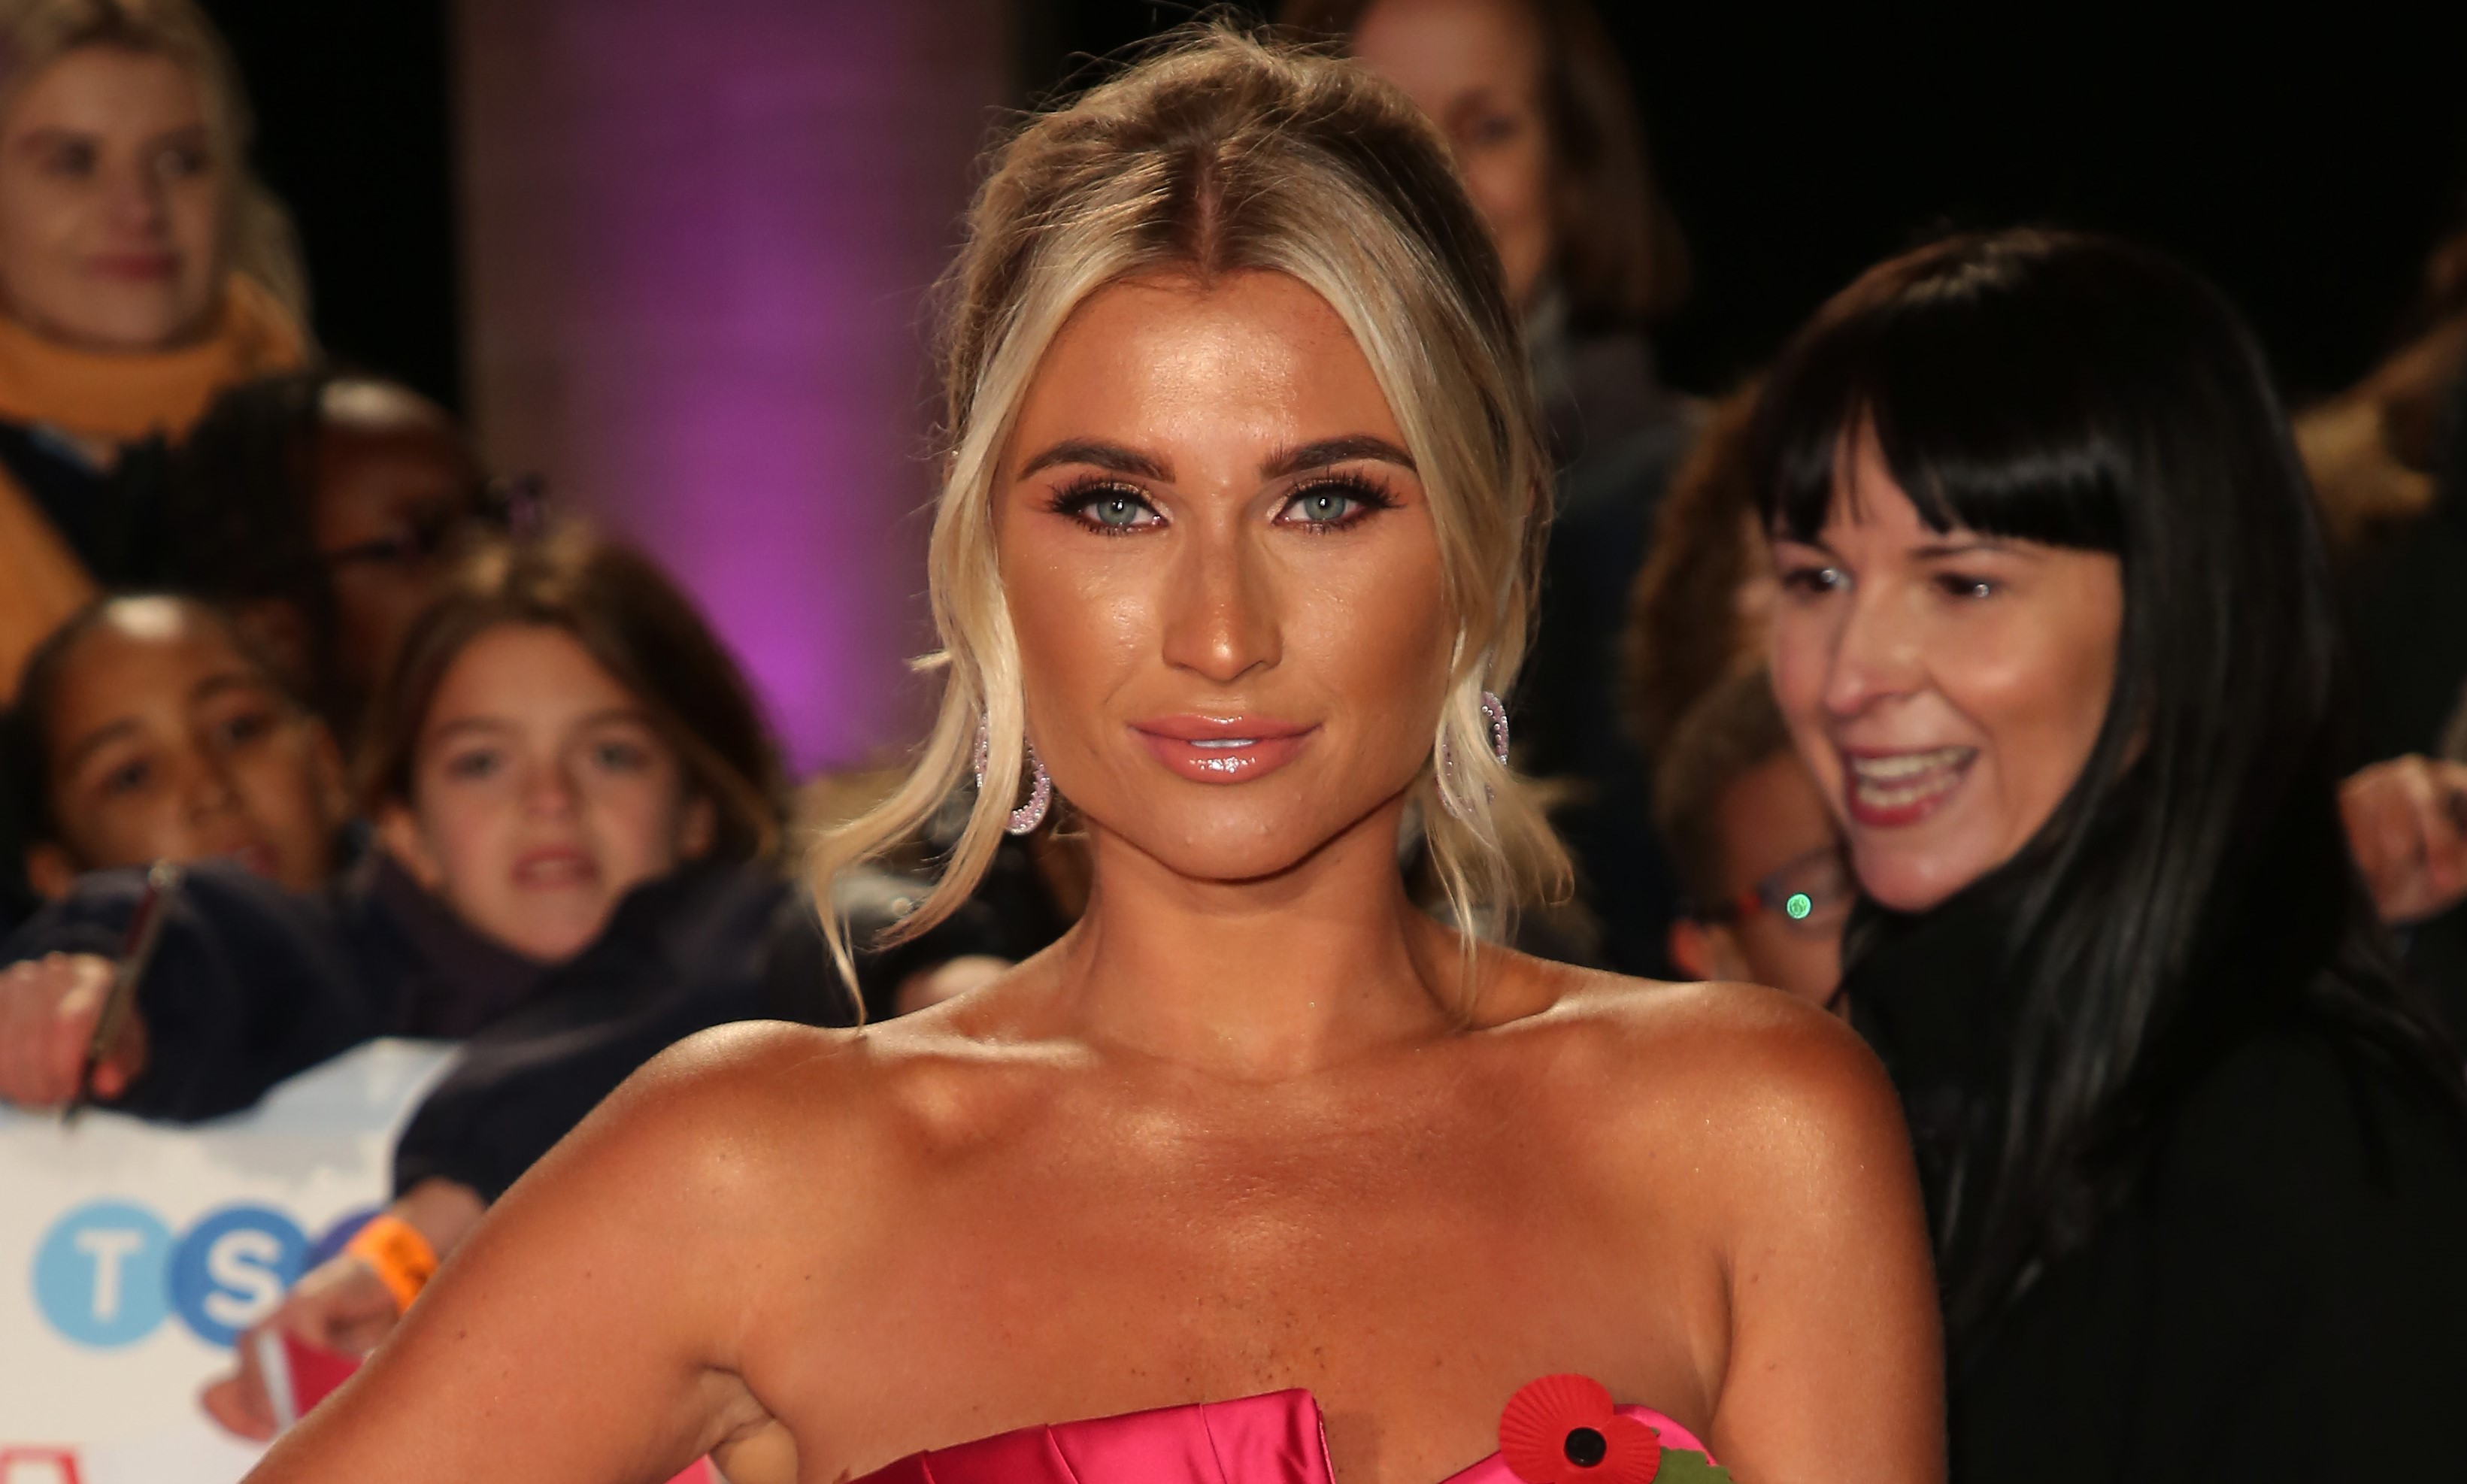 Billie Faiers shows off dramatic new look after wedding to Greg Shepherd